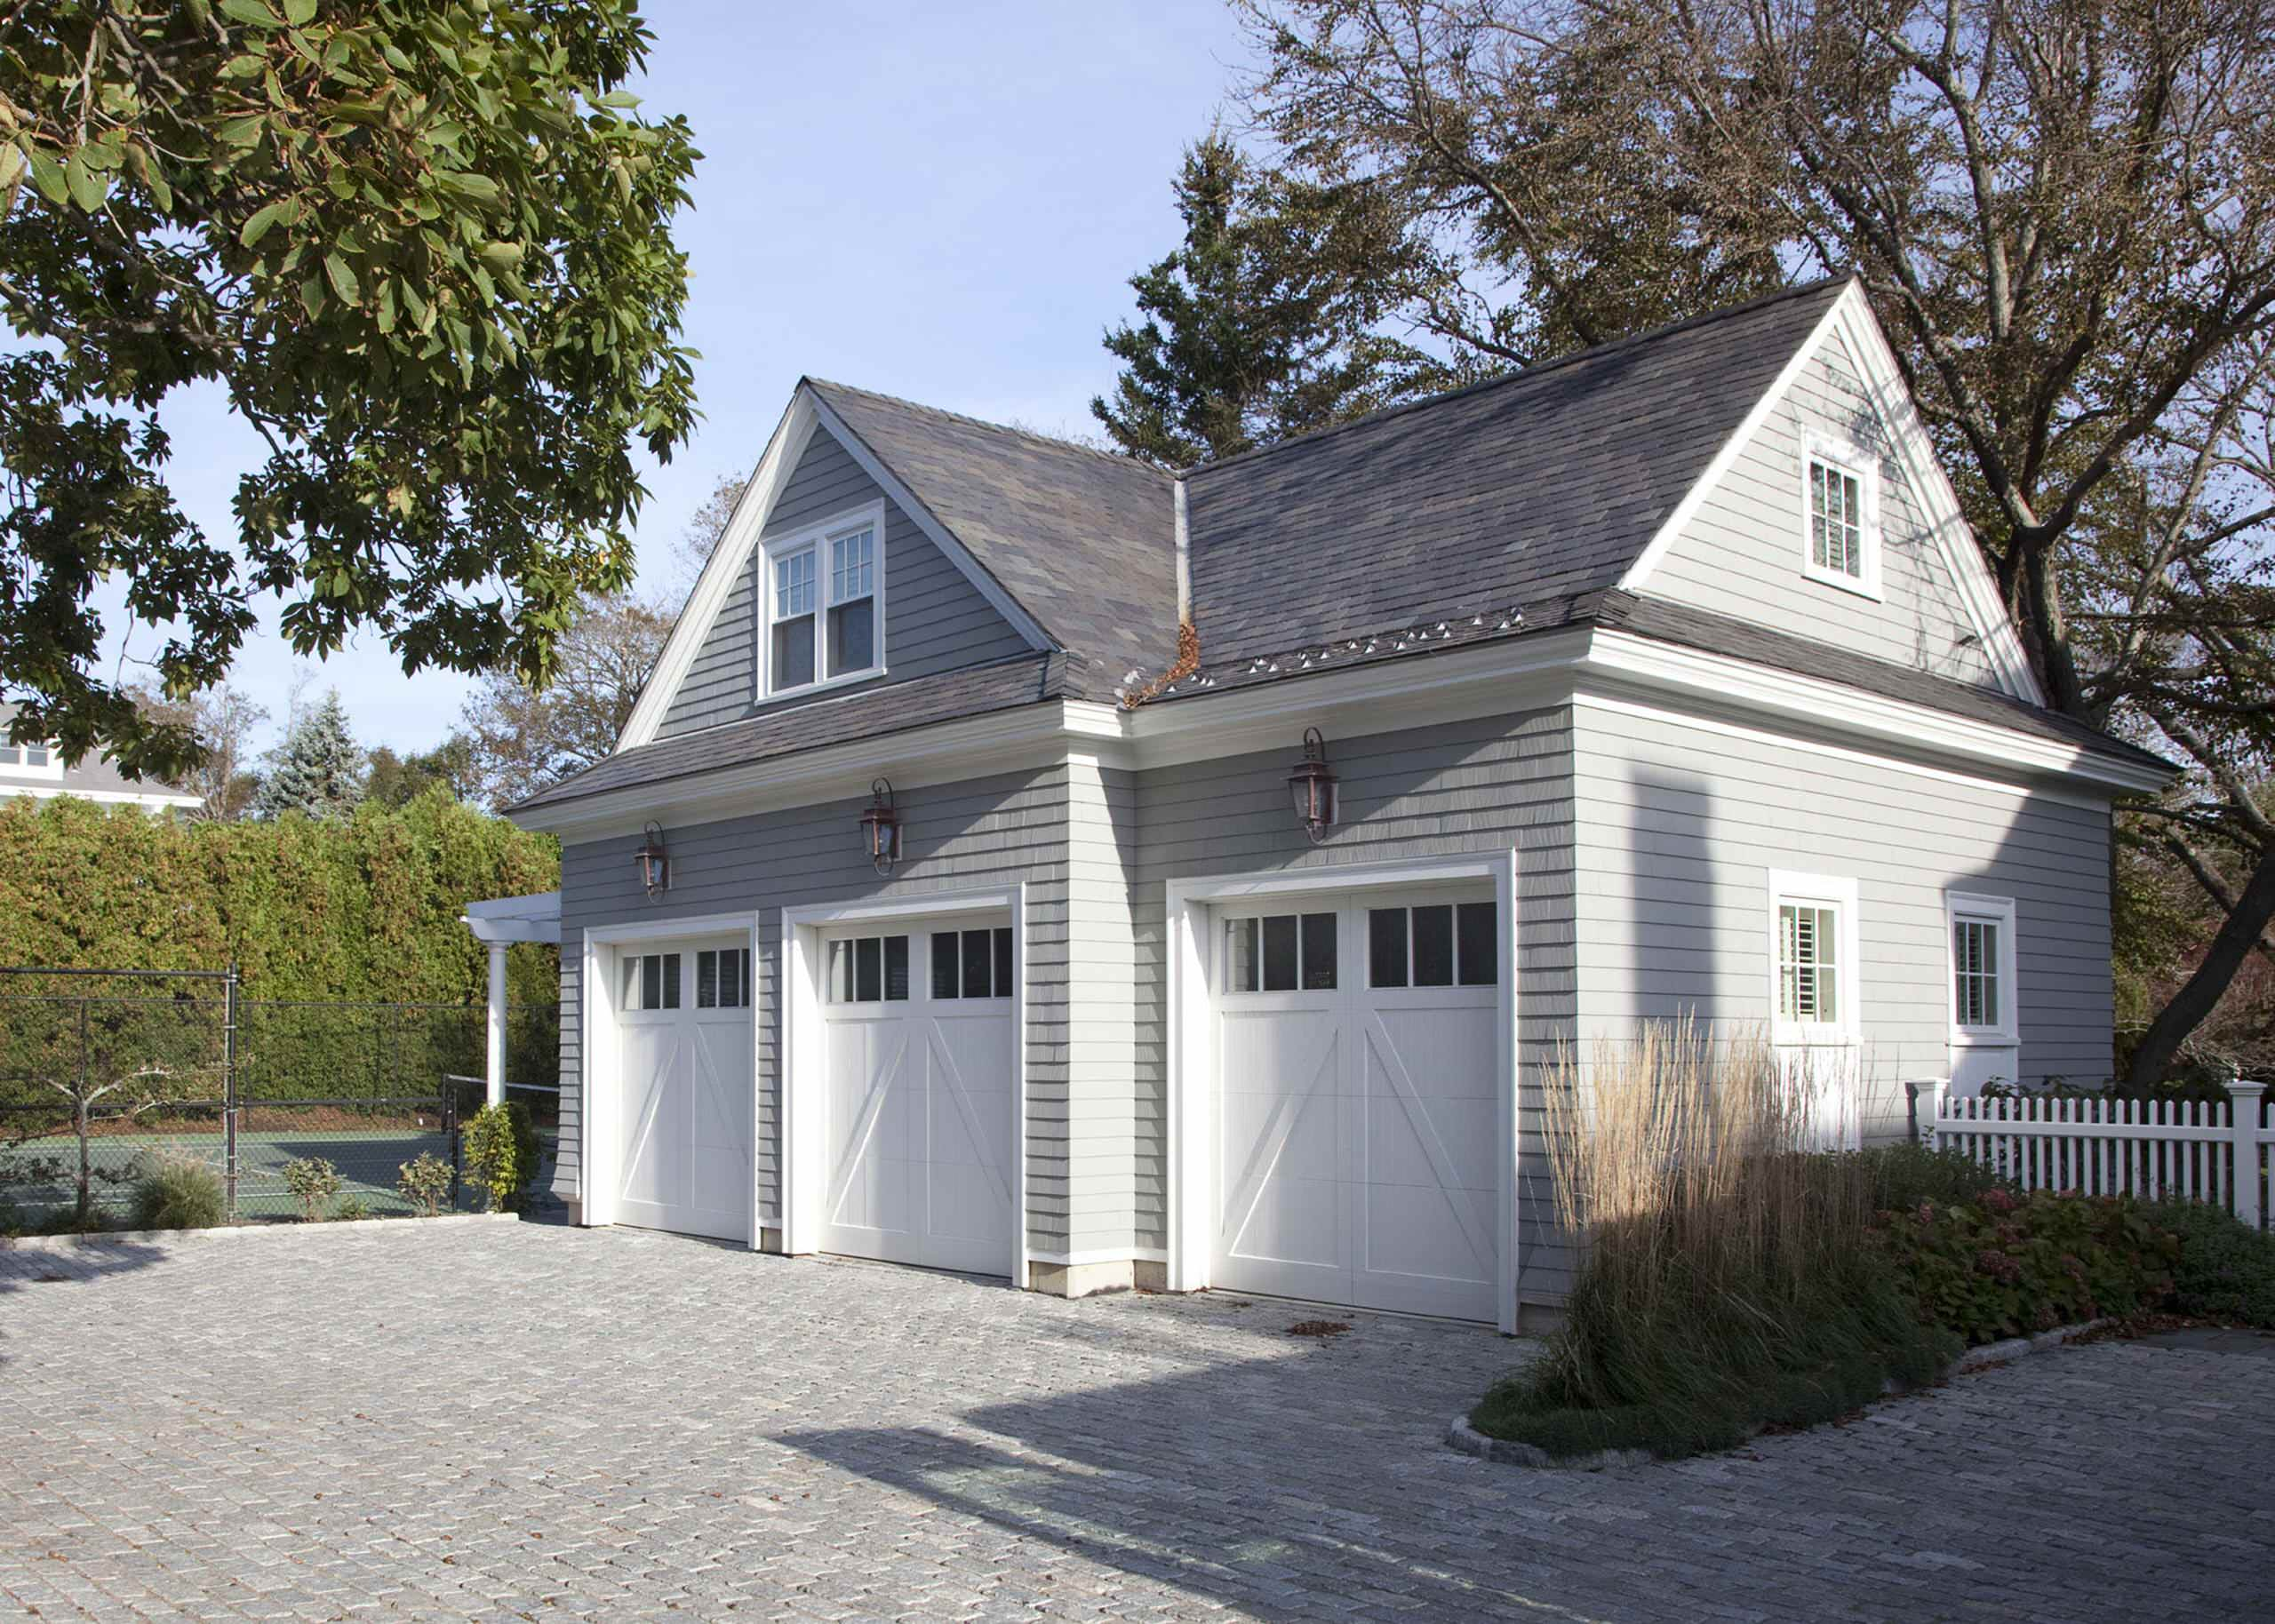 Standard garage door width Traditional Garage carriage doors concrete paving detached garage metal roof wood siding